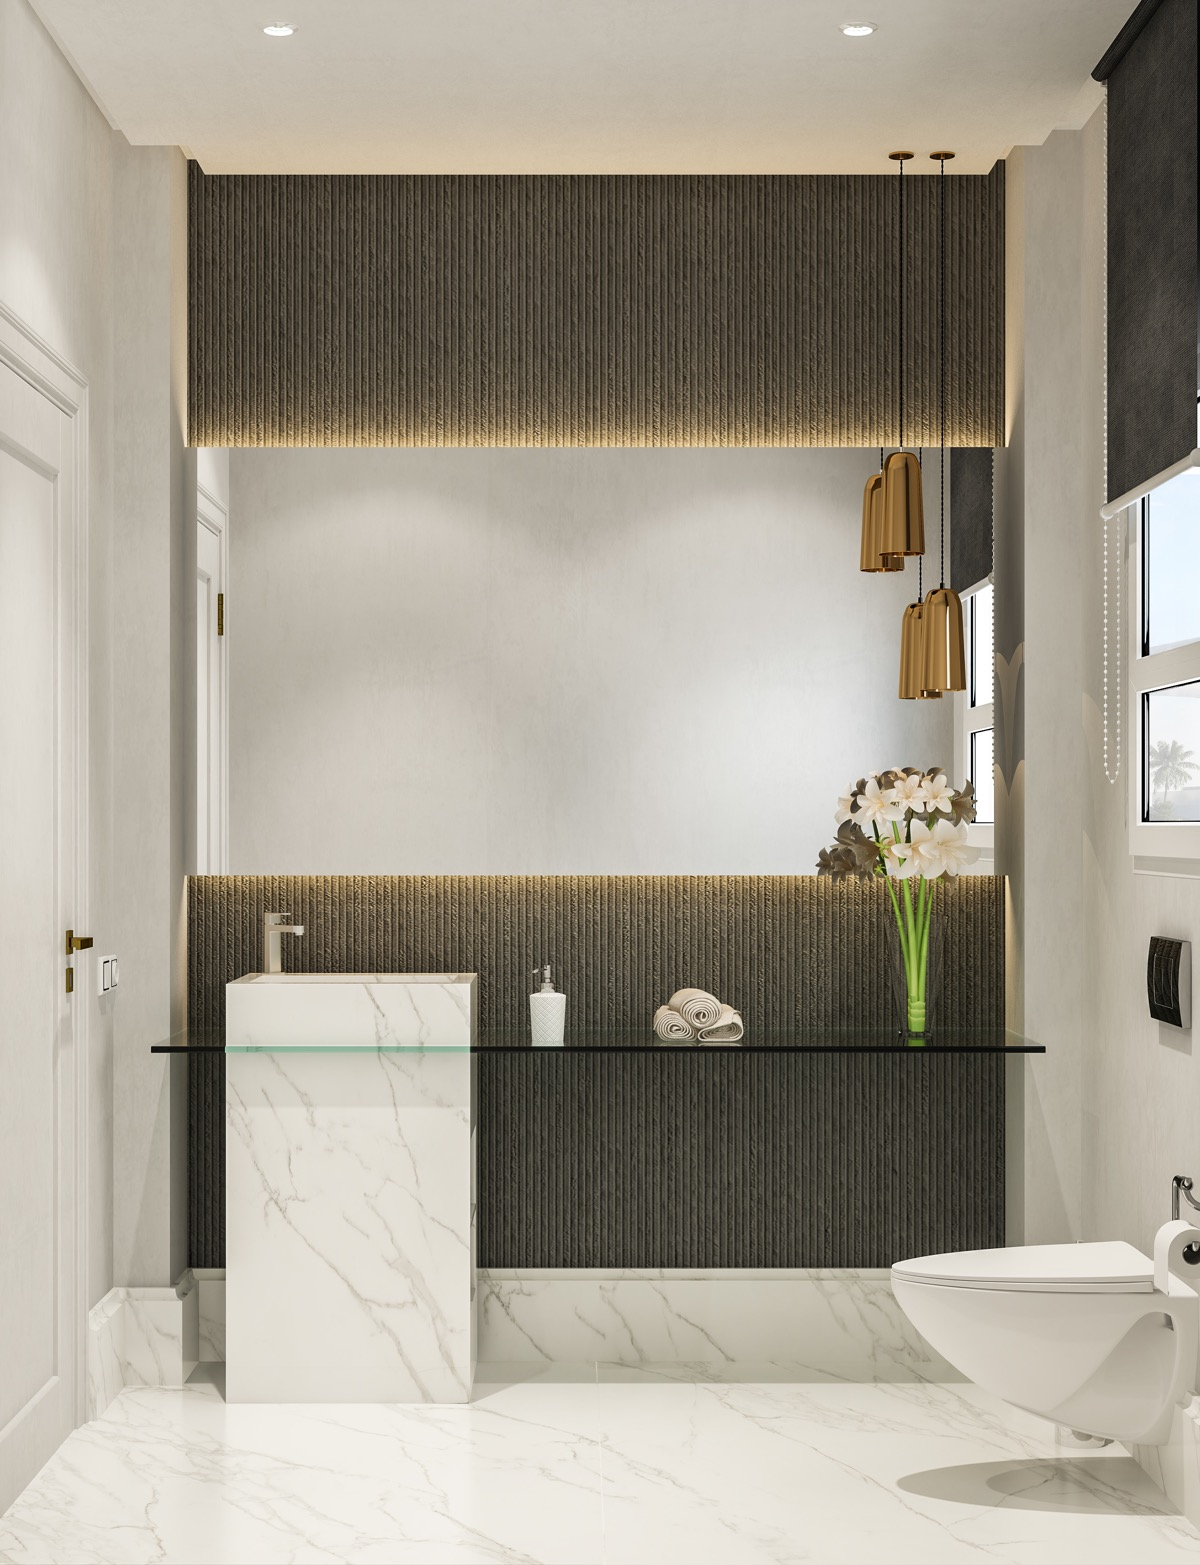 Merveilleux 8 |; Visualizer: Ahmed Morsy. Elegance Abounds In This Small Grey And White  Bathroom.